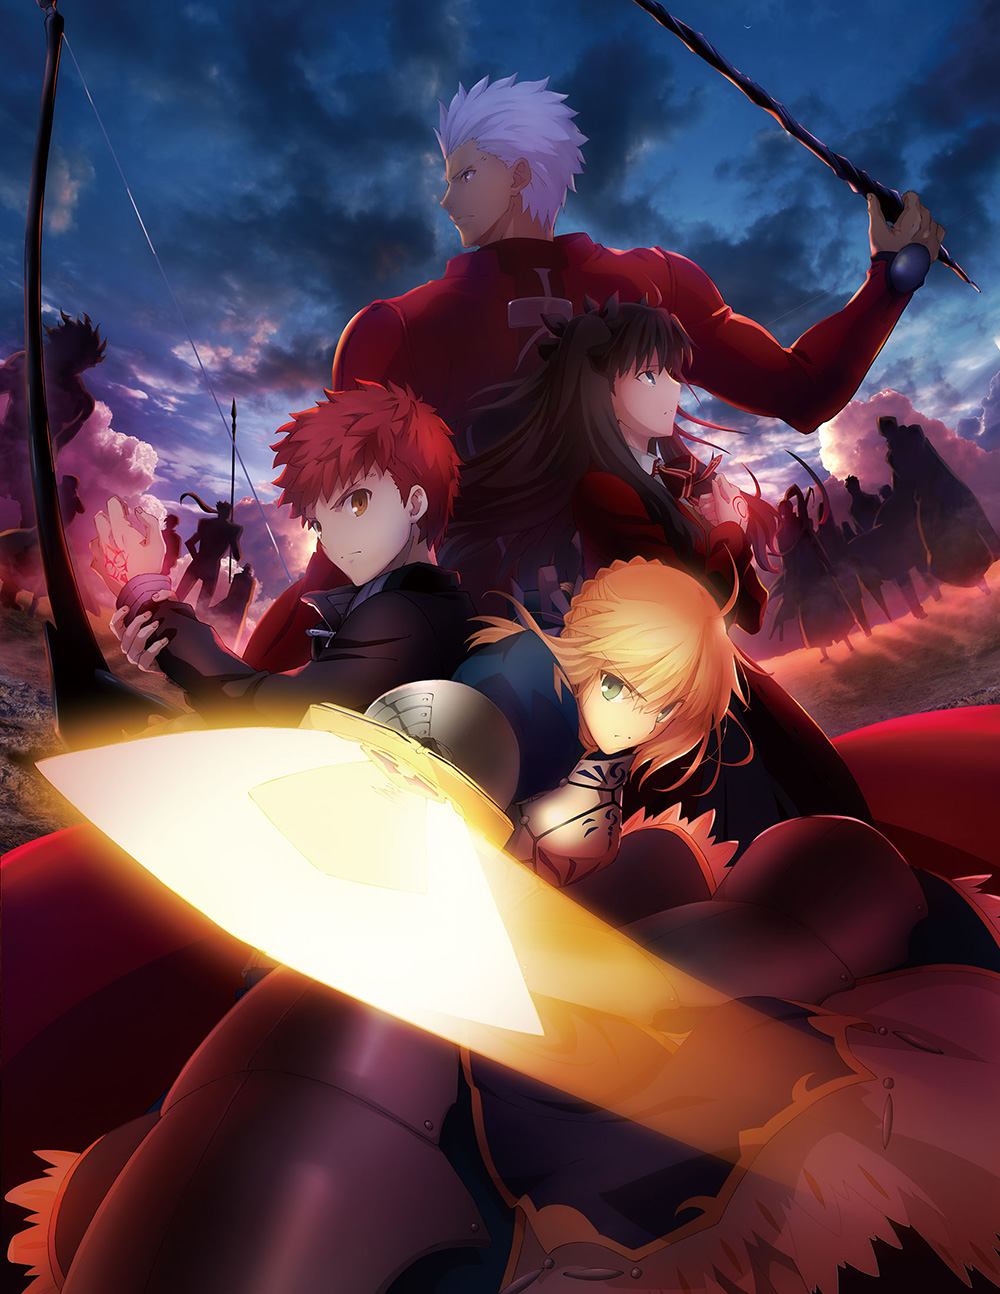 Fate-stay-night-Unlimited-Blade-Works_Haruhichan.com-Blu-ray Visual